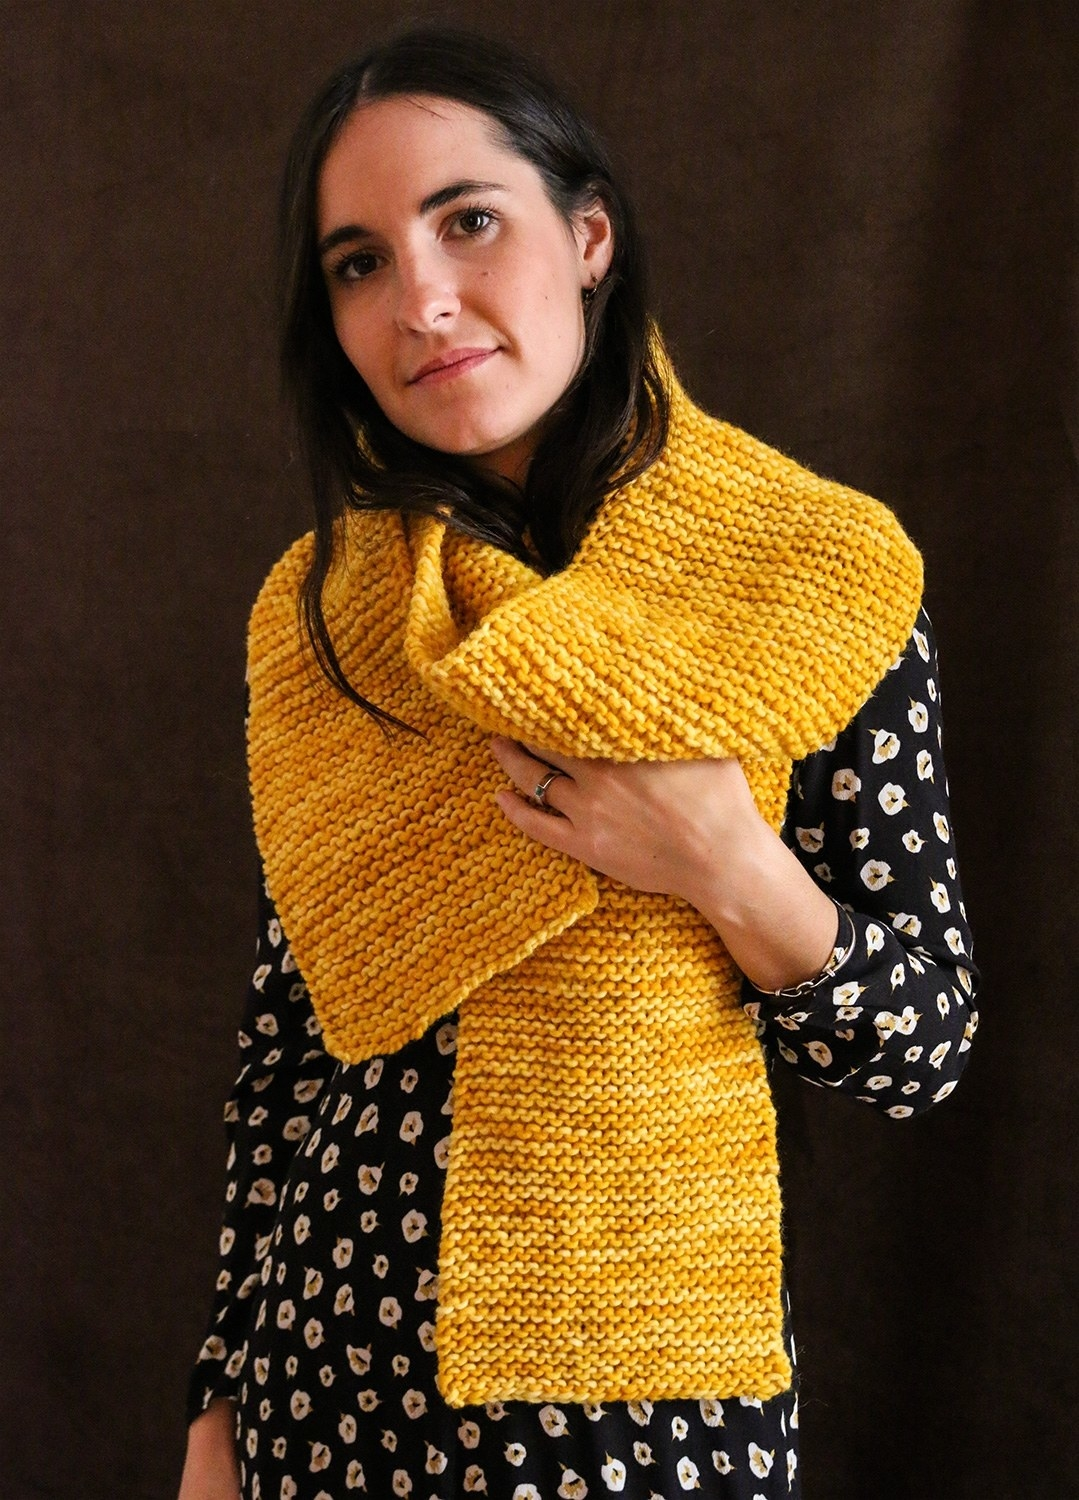 Model wearing the bright yellow scarf